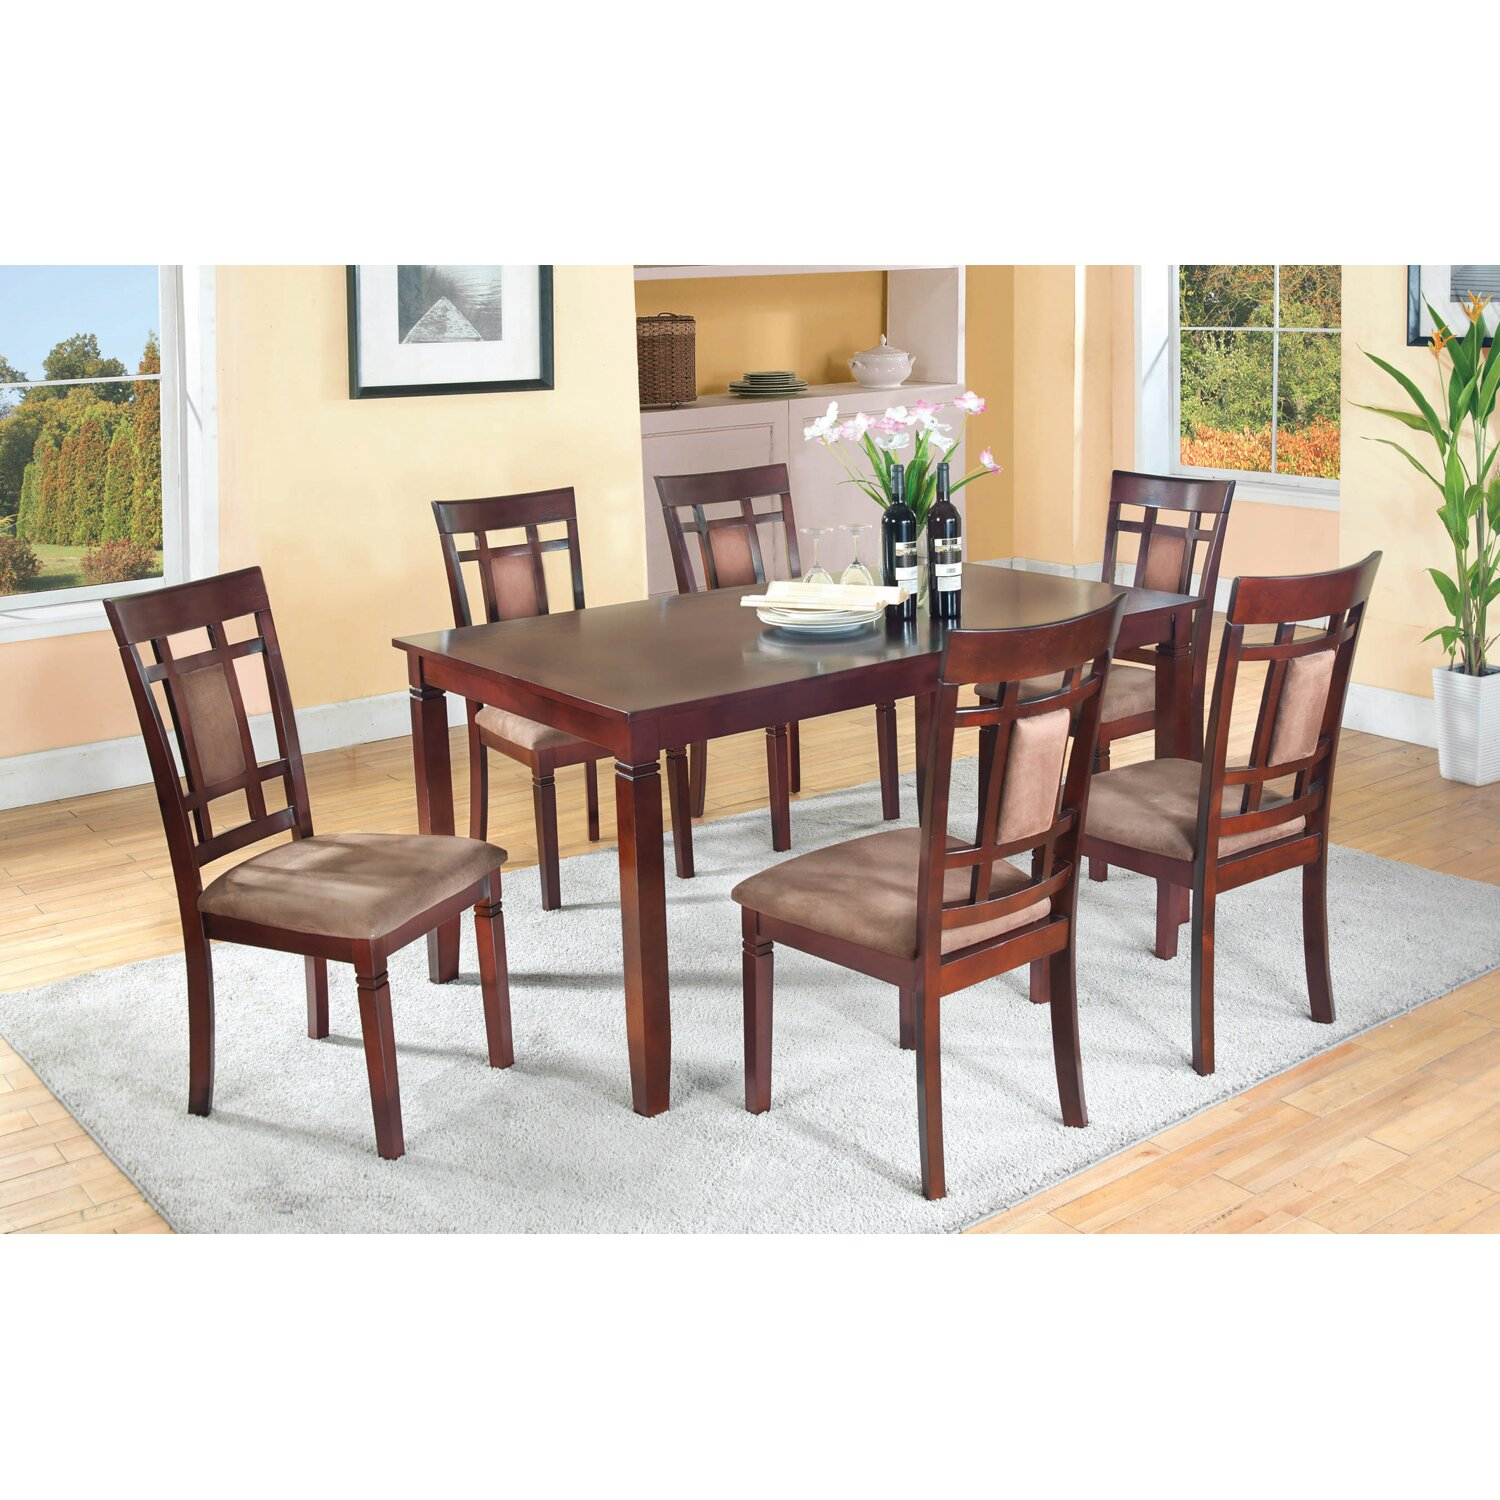 Darby Home Co Patrick 7 Piece Dining Set & Reviews